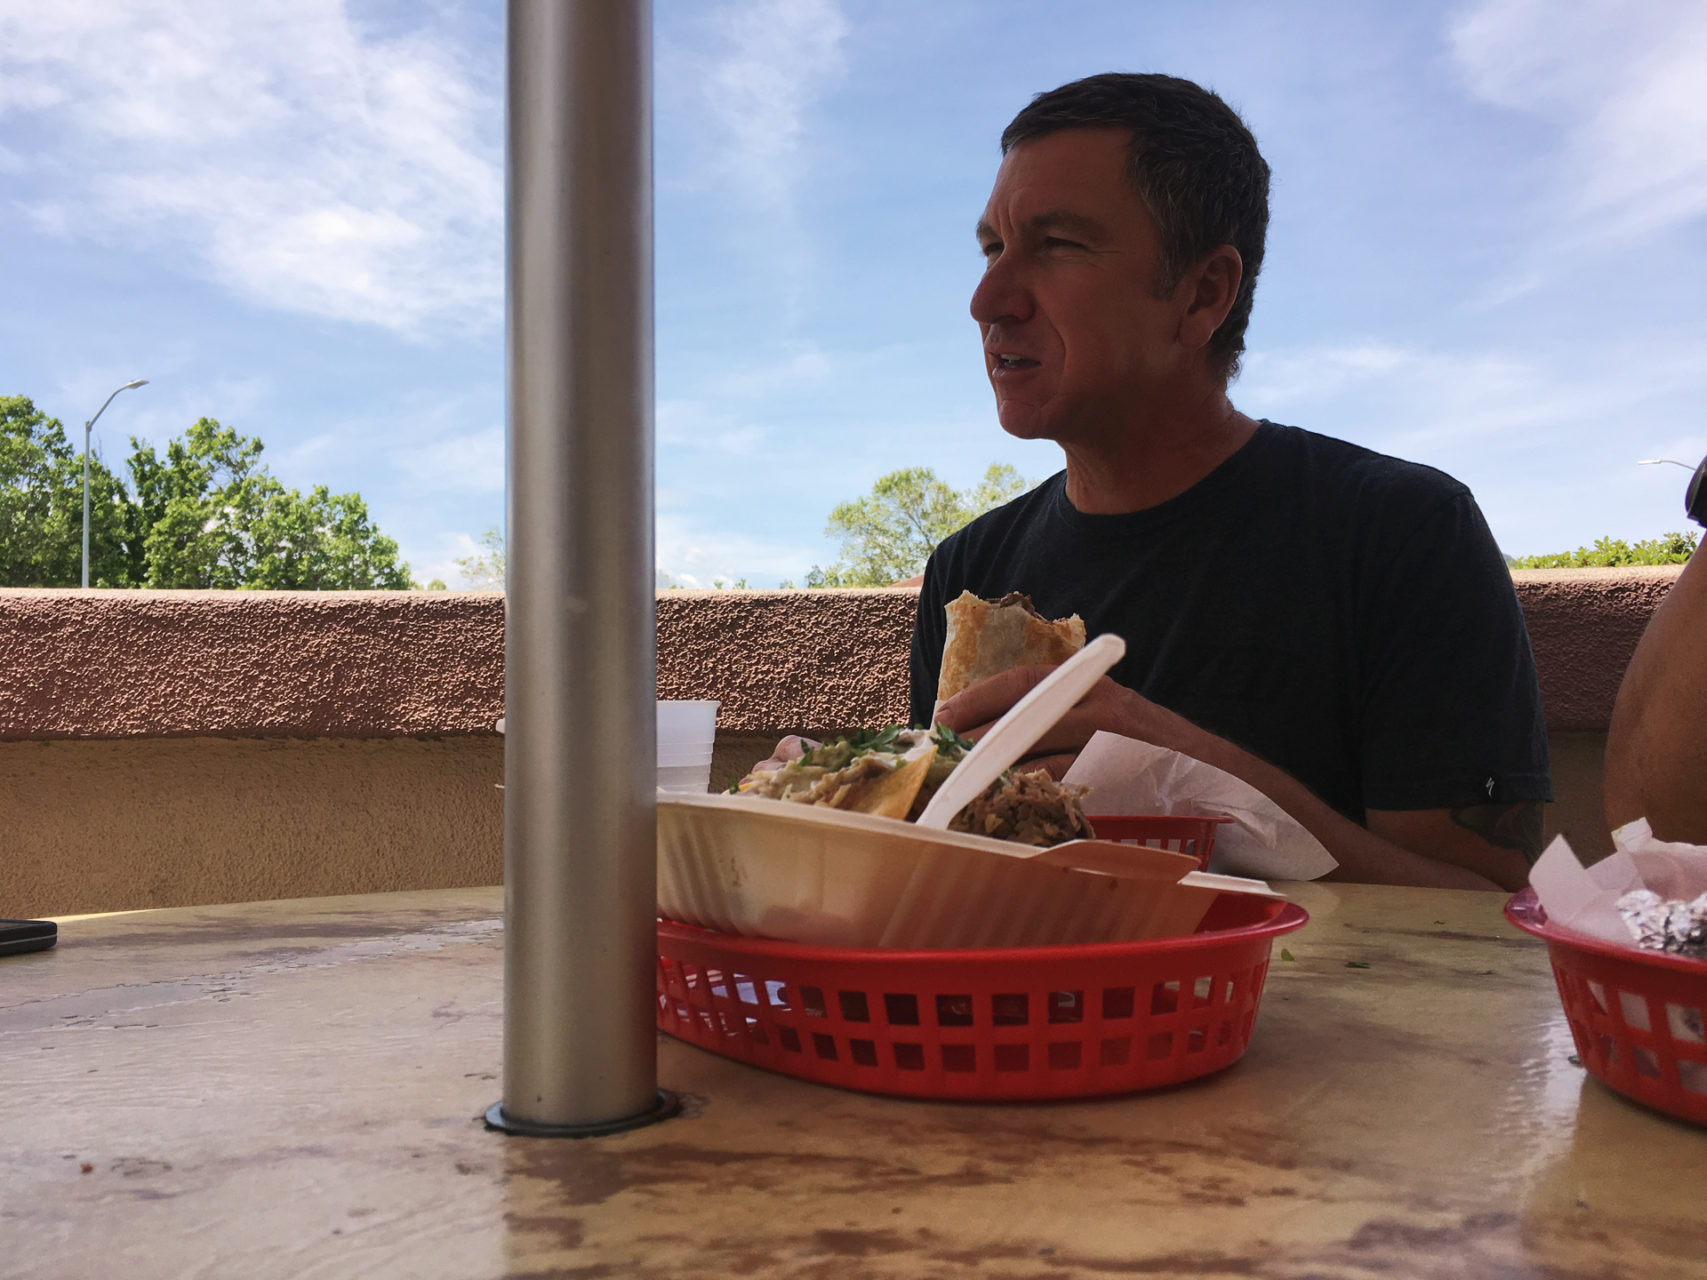 Robert Egger at Super Taqueria, during a planning meeting. He could not attend due to having to be a Mom to a premature goat. Seriously.